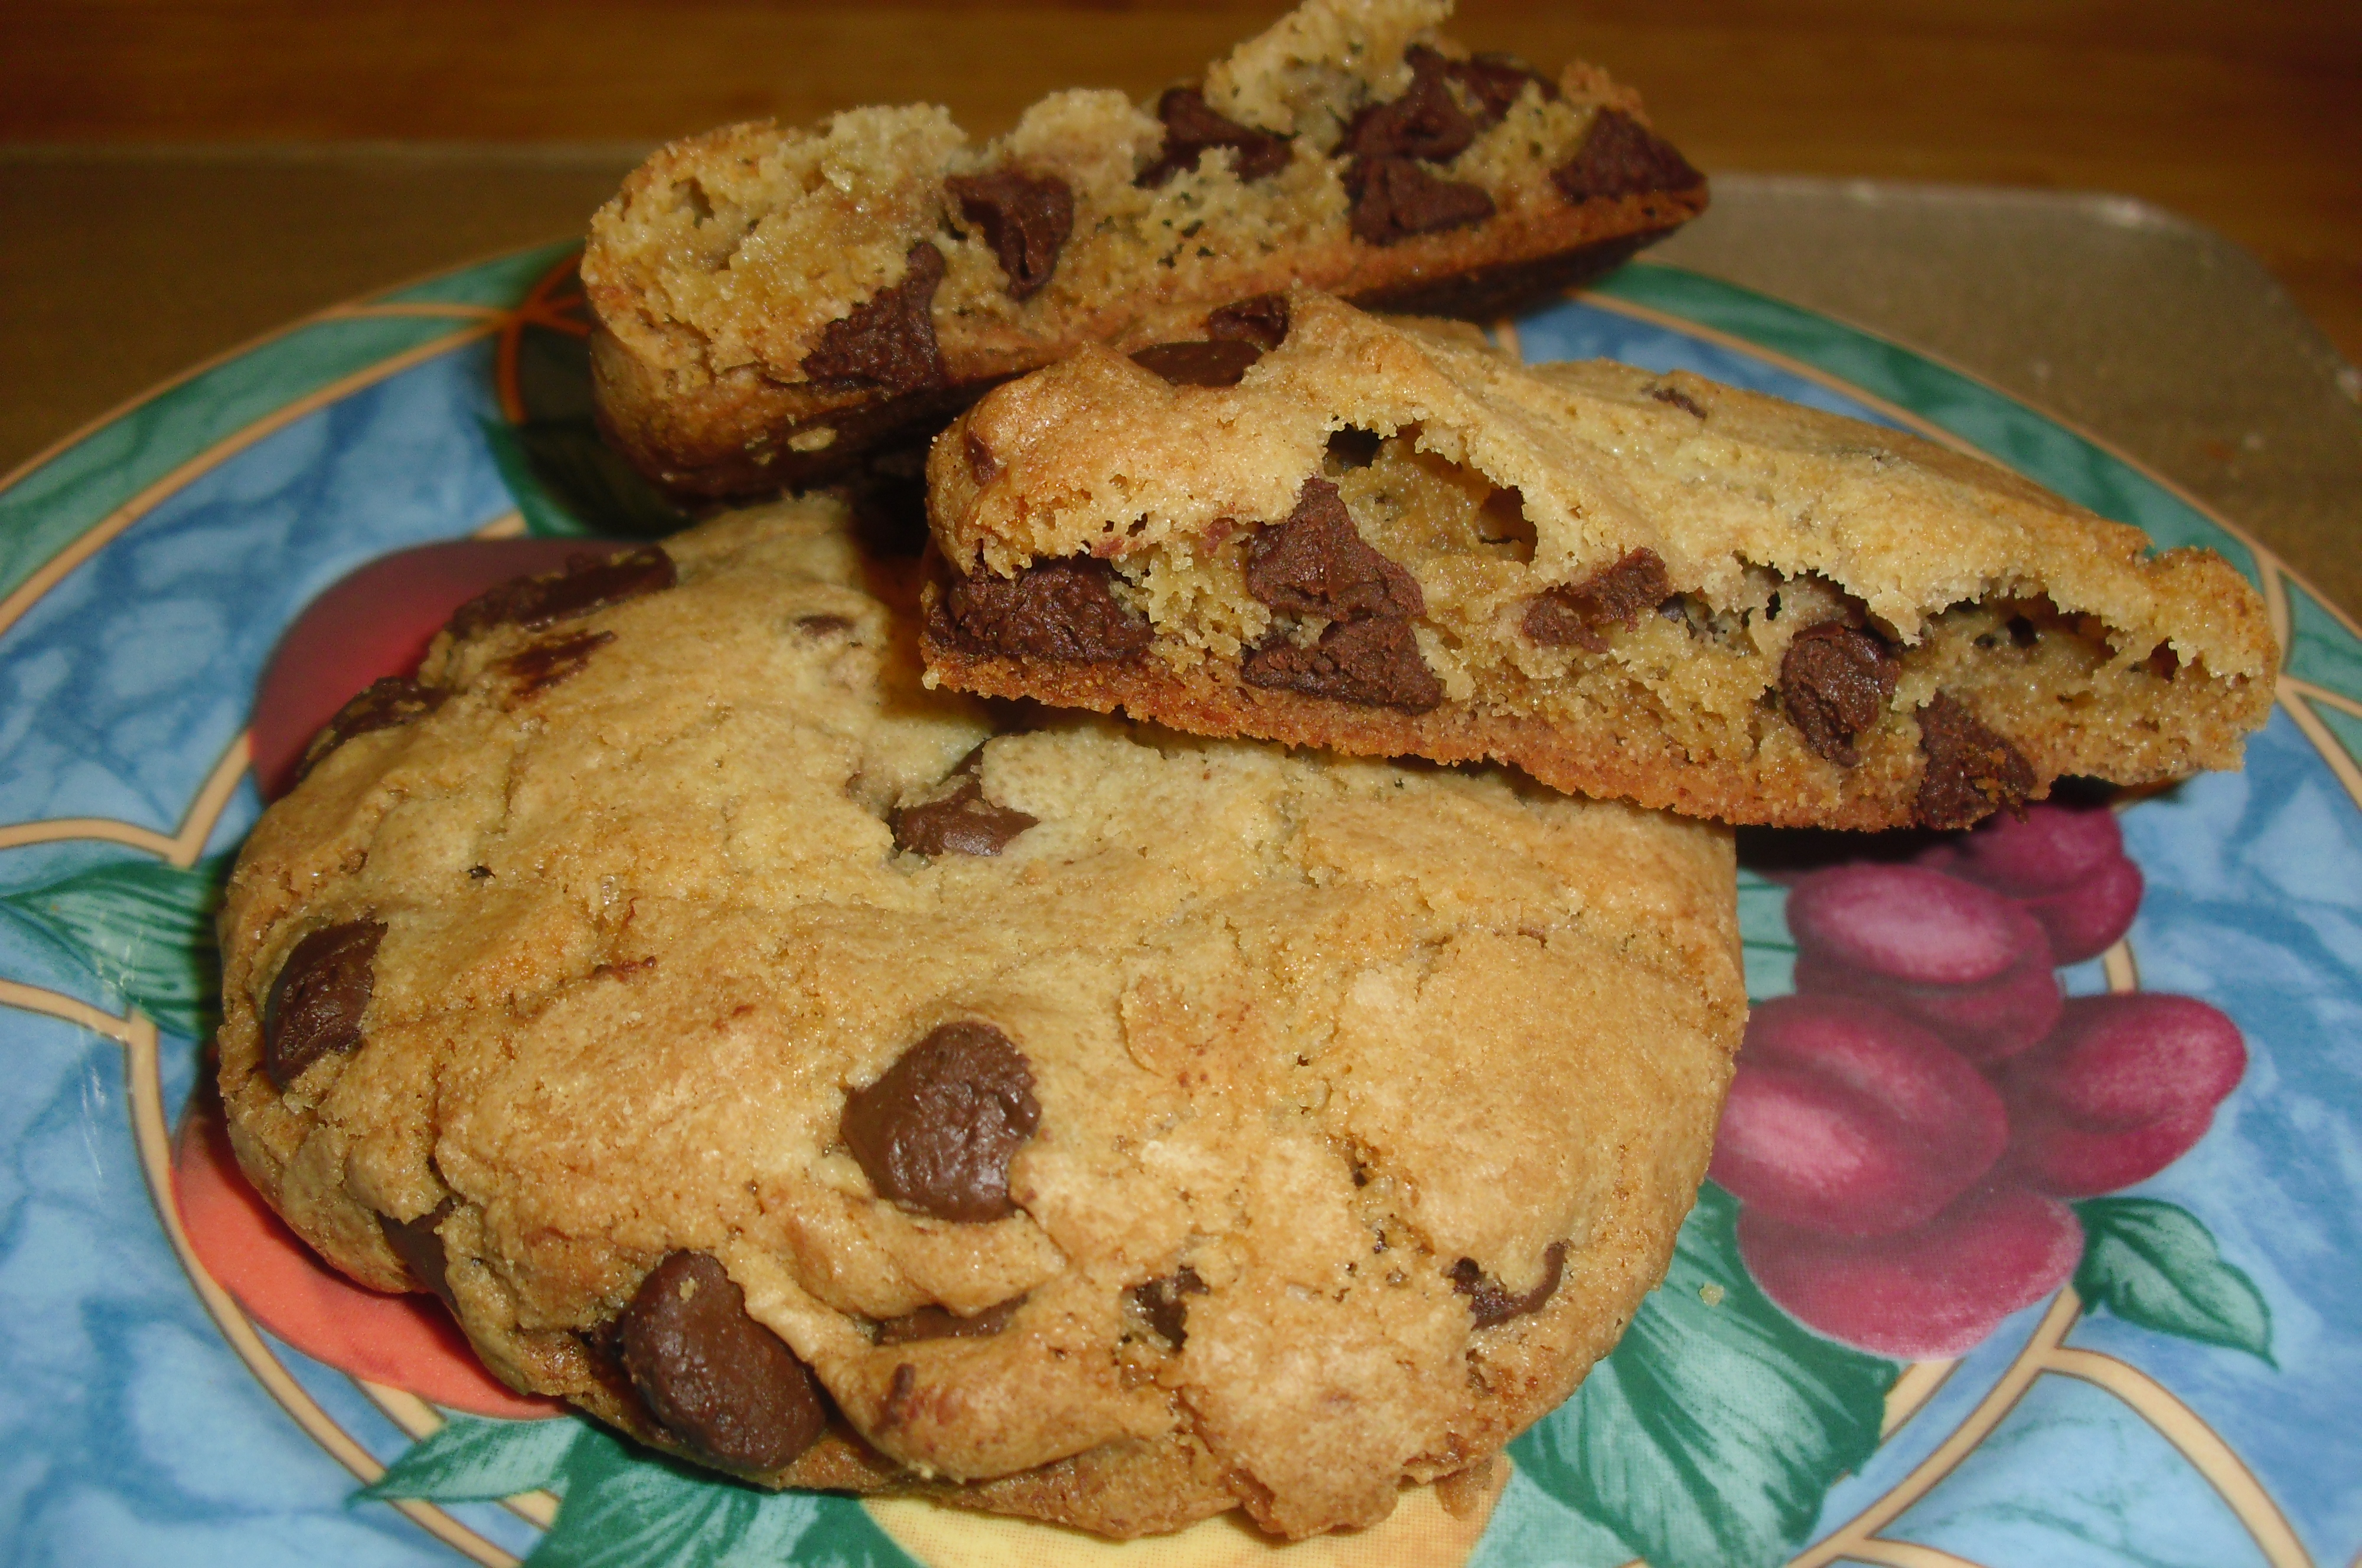 Big Chewy Chocolate Chip Cookies | D-Liss-Ous Dishes